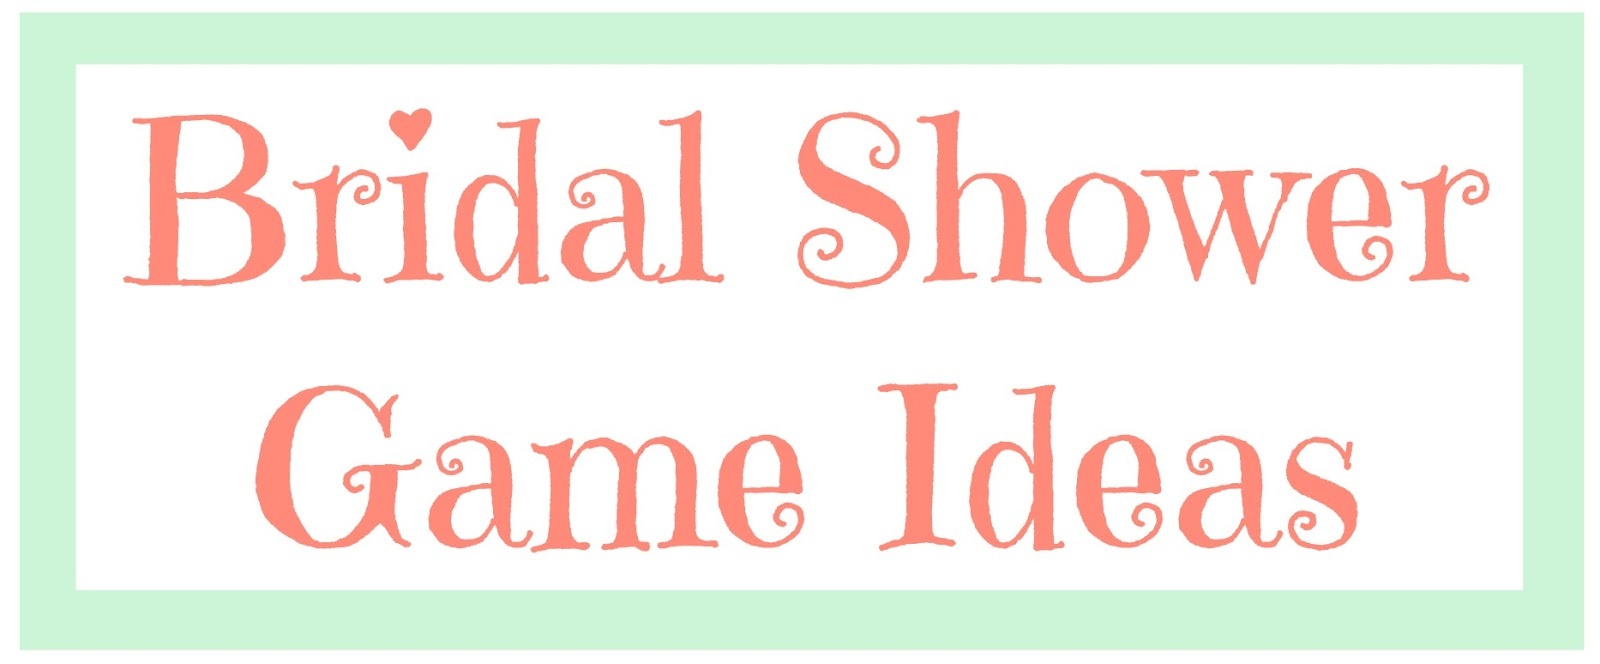 Bridal Shower Game Ideas - www.sweetlittleonesblog.com